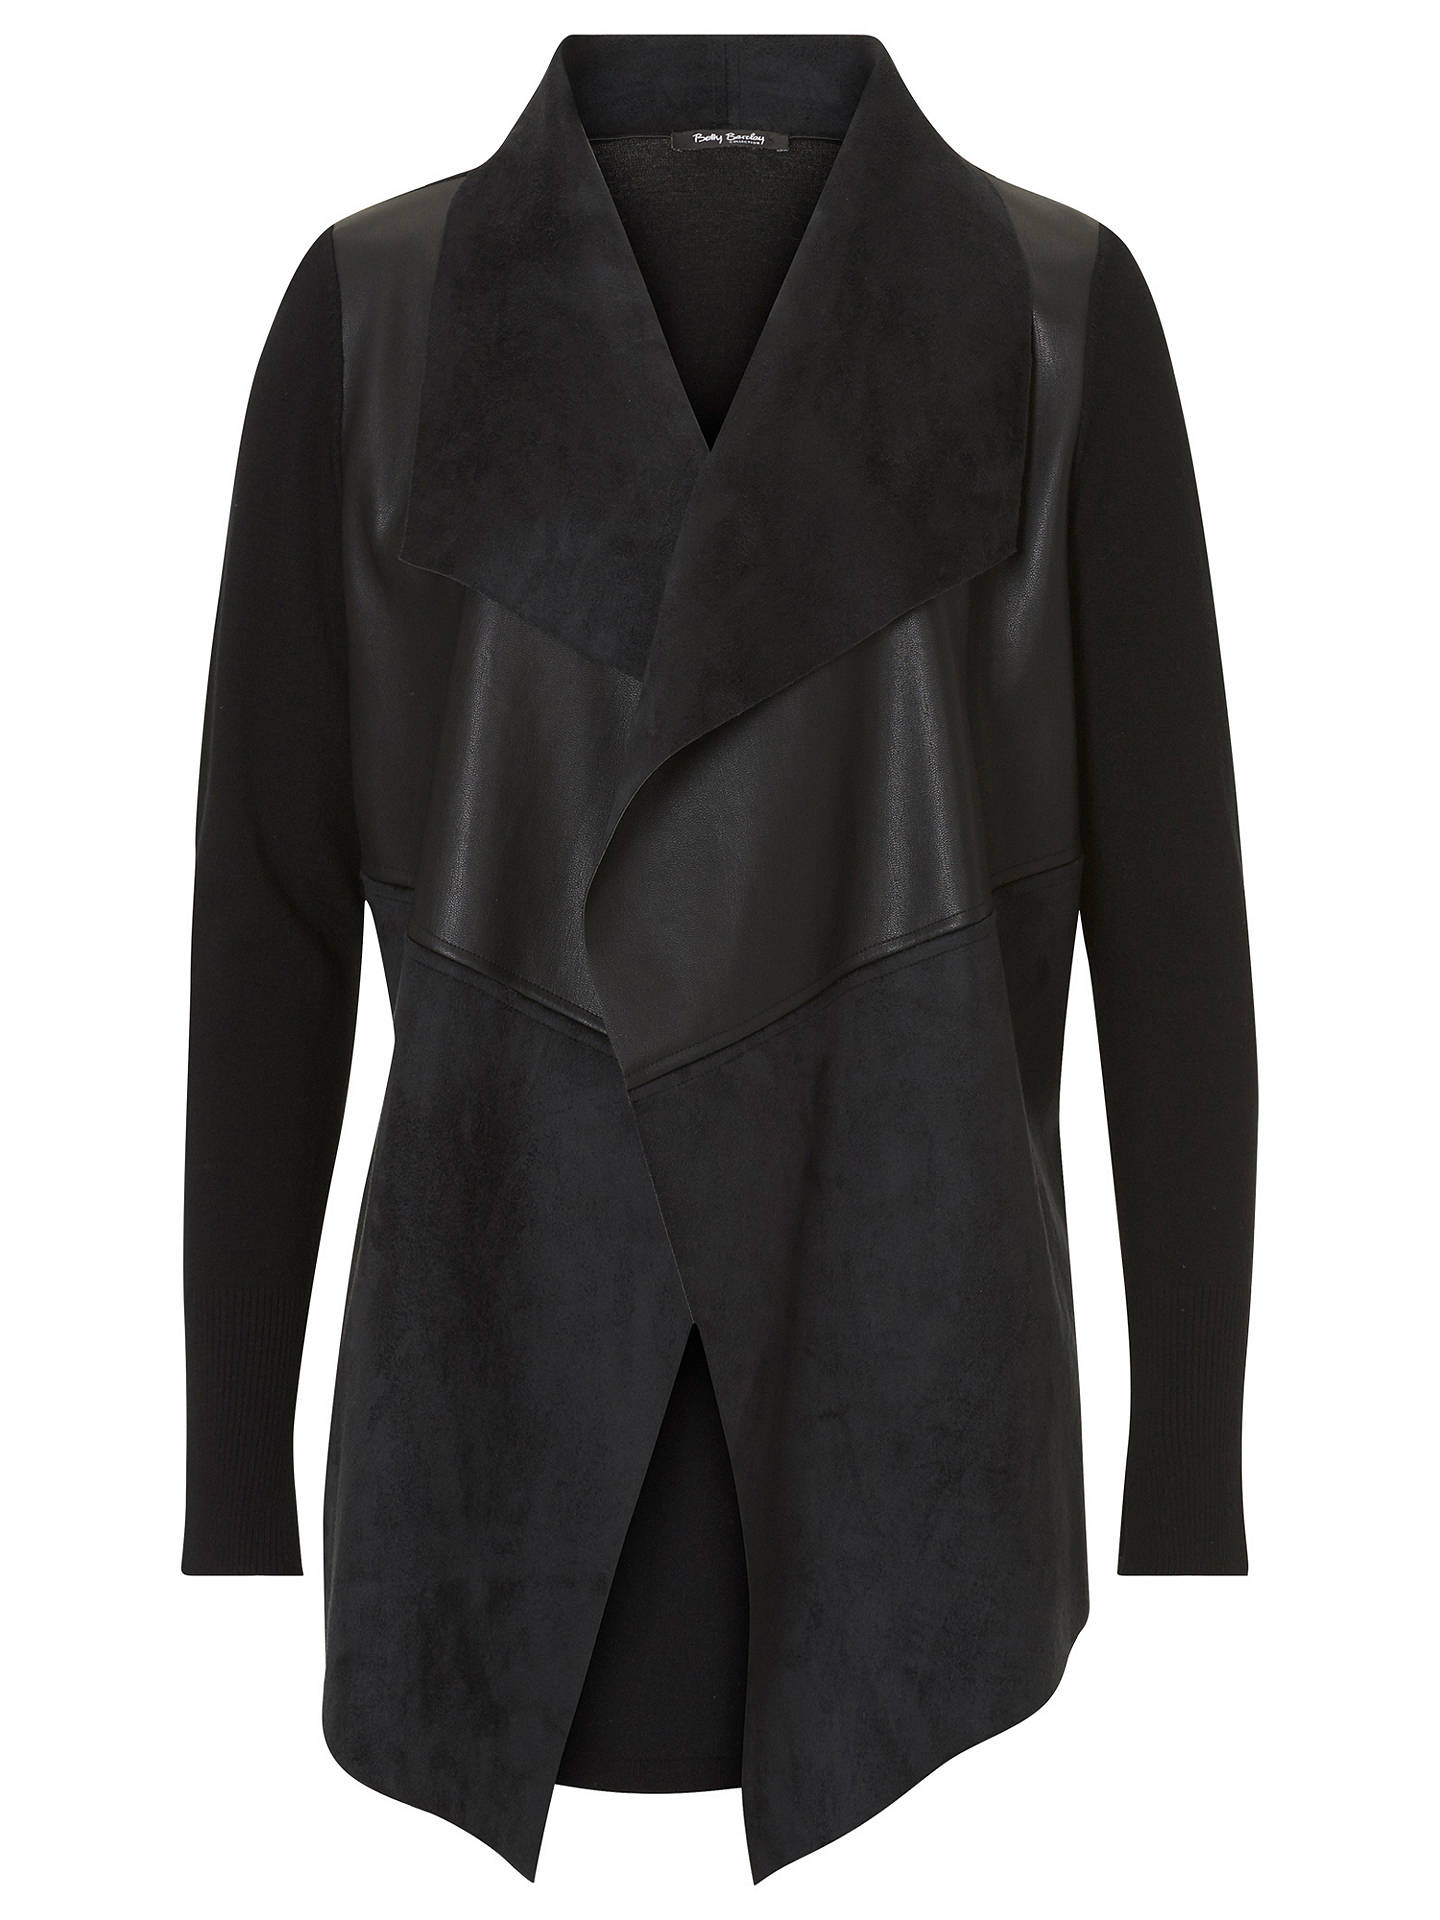 BuyBetty Barclay Faux Suede Leather Trim Jacket, Black, 6 Online at johnlewis.com